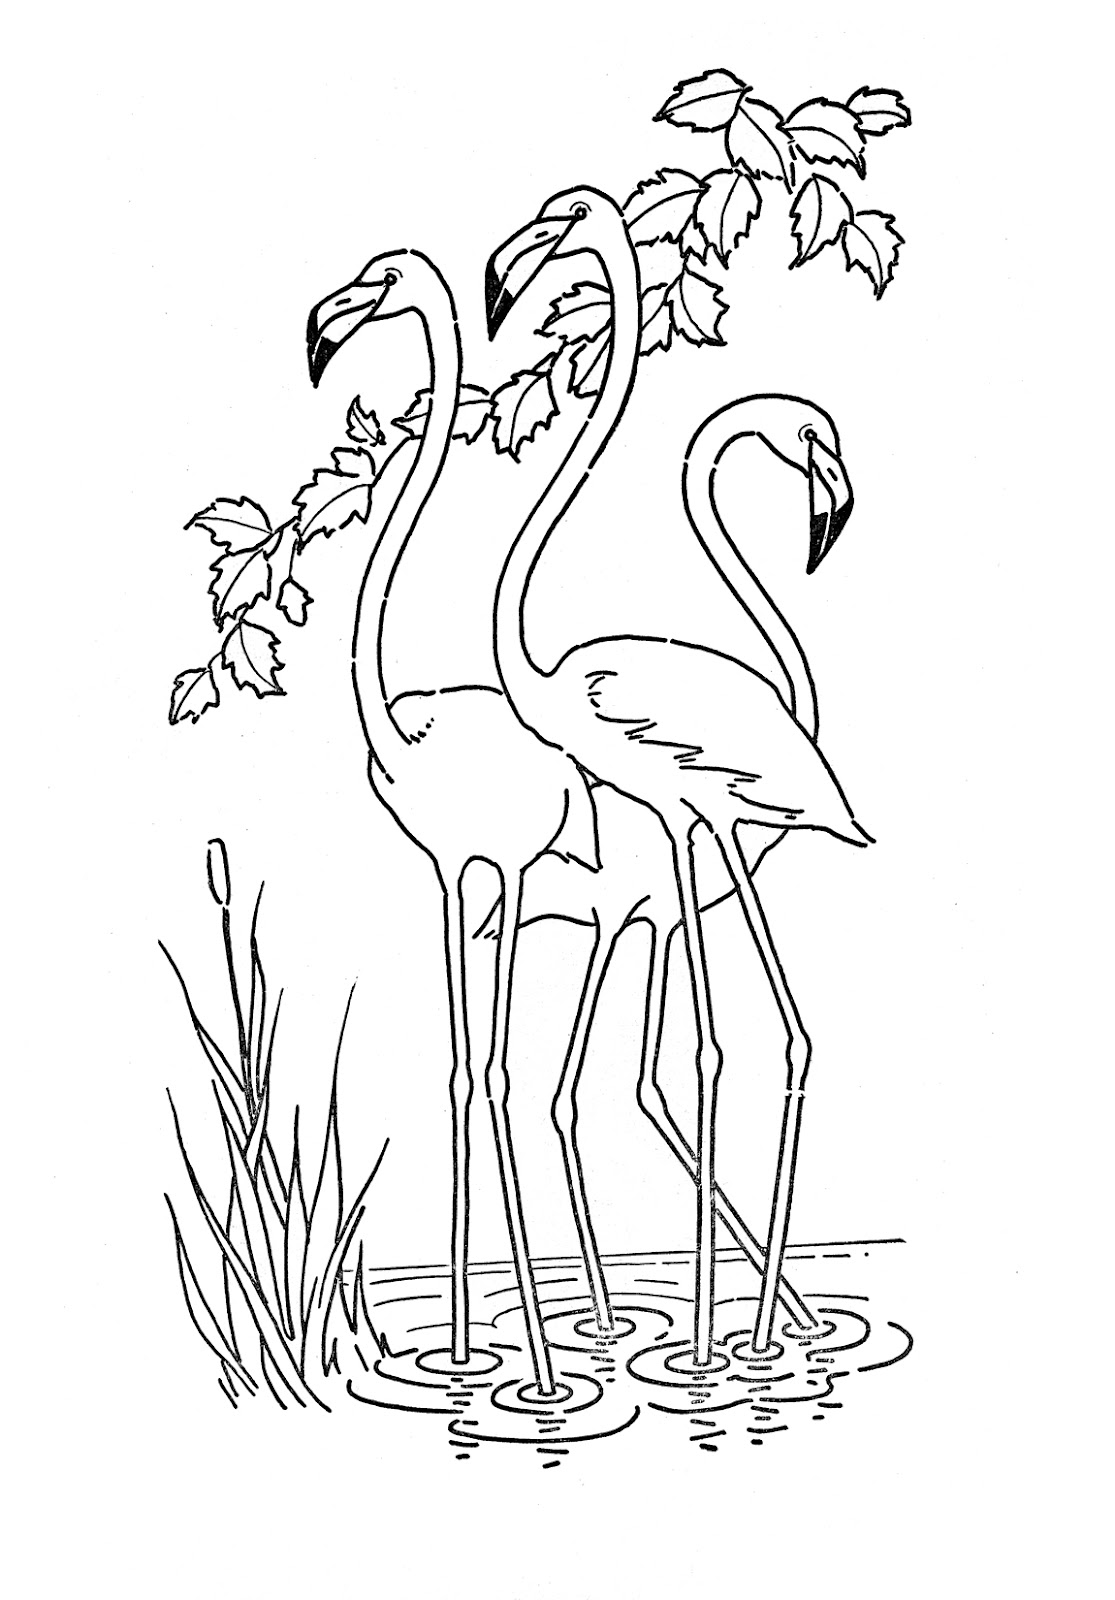 flamingo coloring page top 10 flamingo coloring pages for toddlers page coloring flamingo